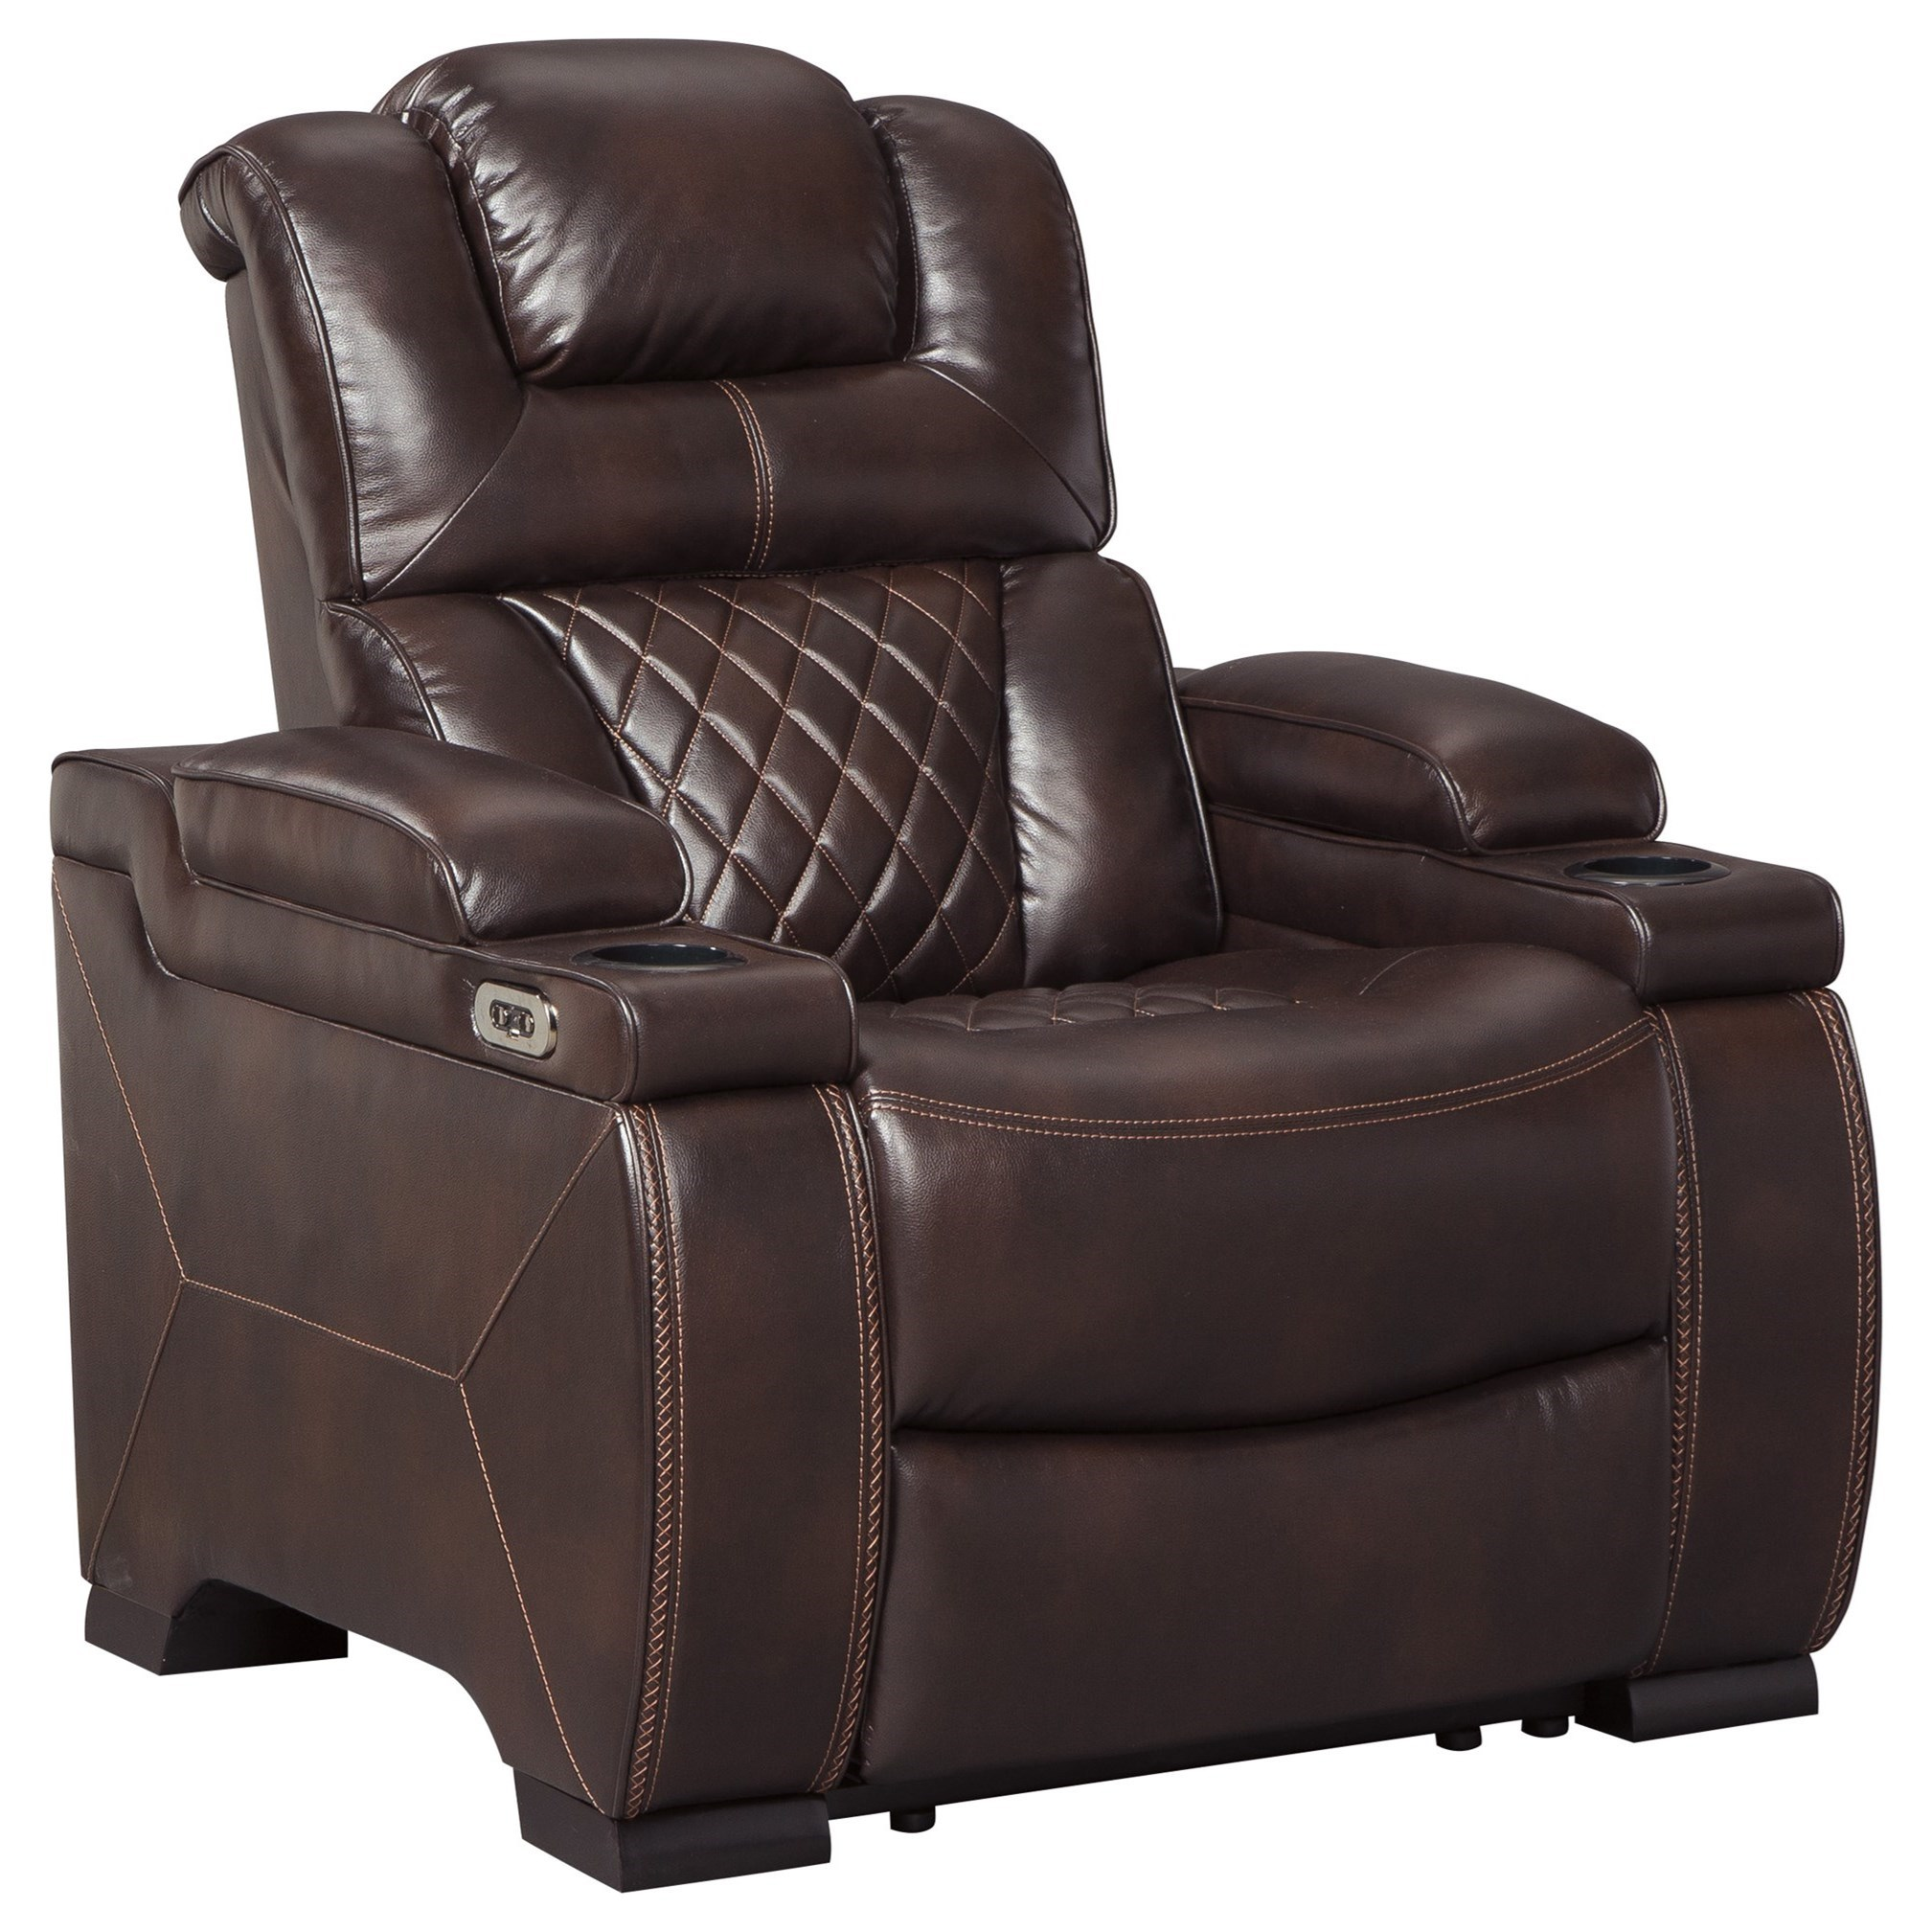 Warnerton Power Recliner by Signature Design by Ashley at Value City Furniture